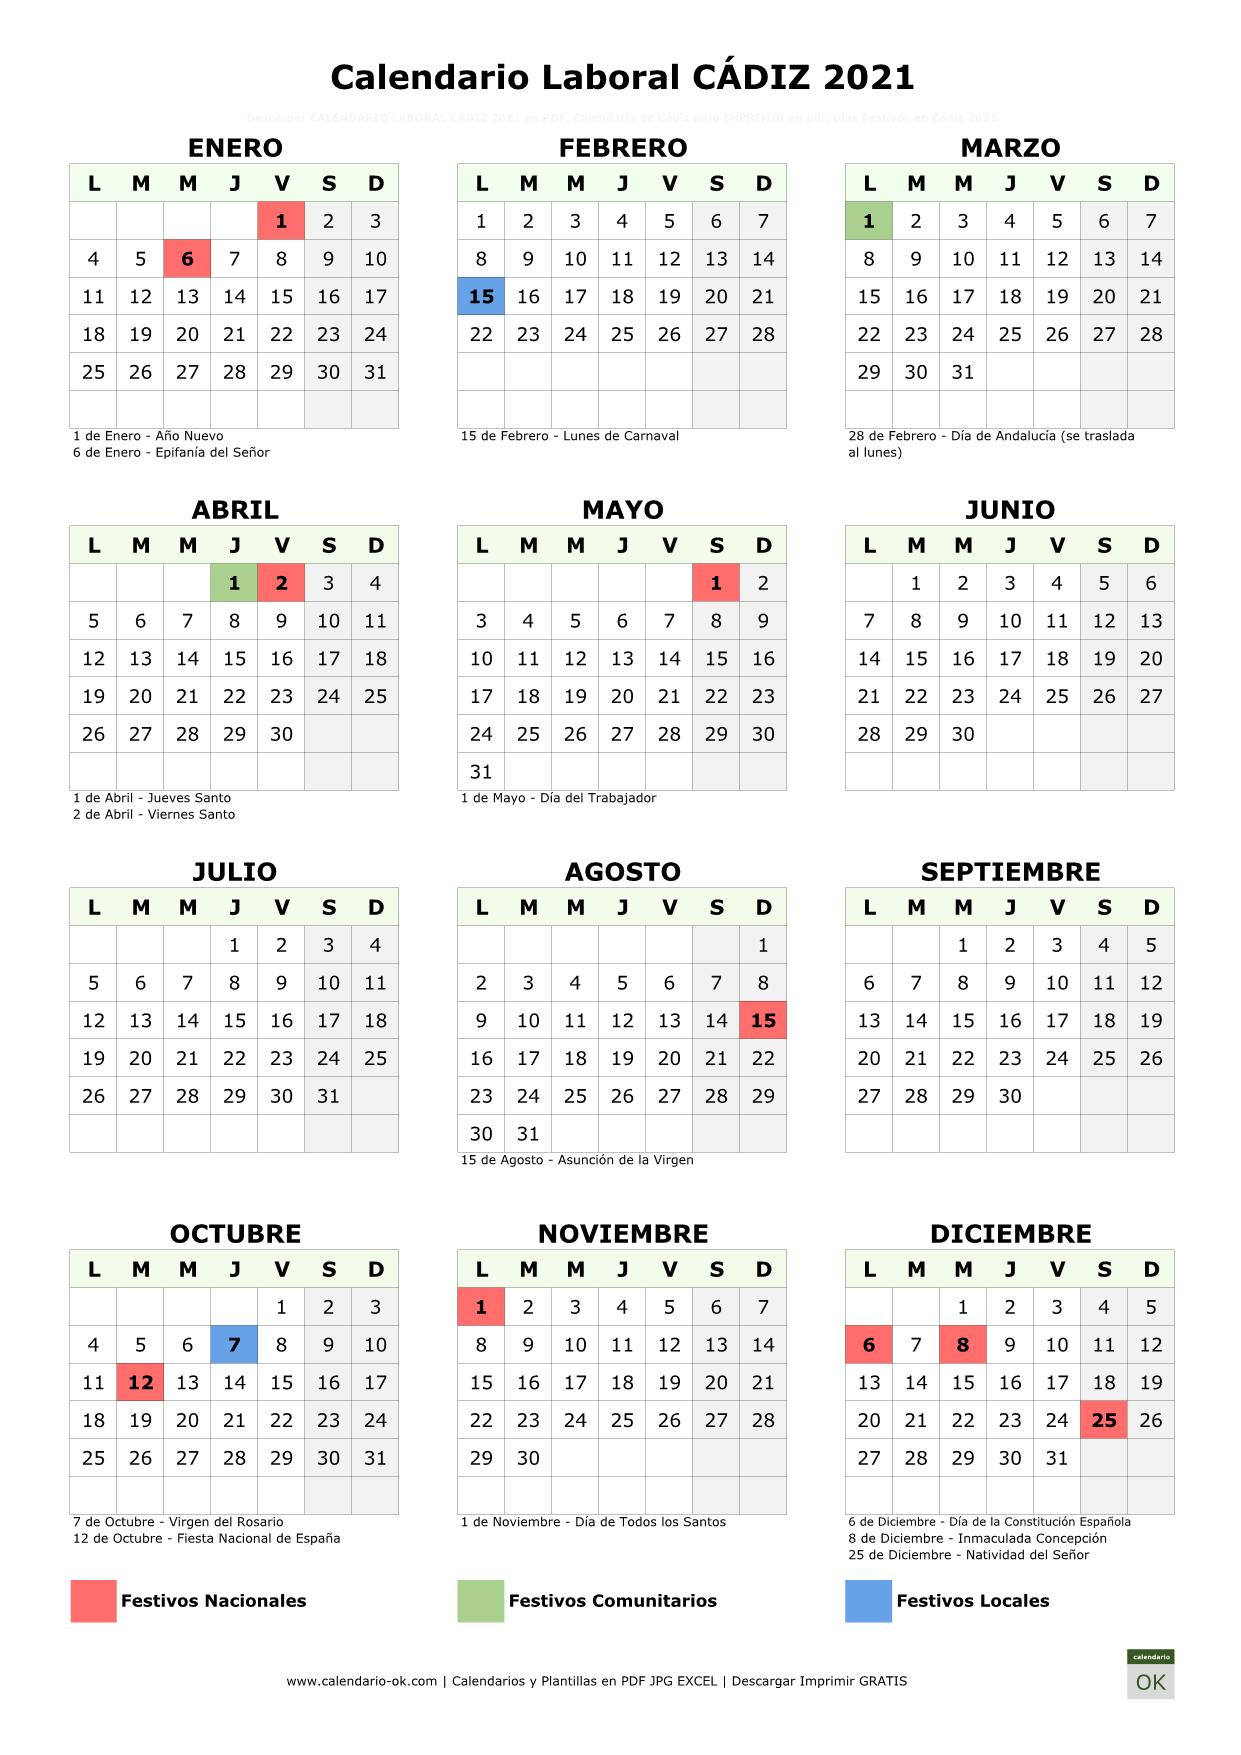 Calendario Laboral Cádiz 2021 vertical